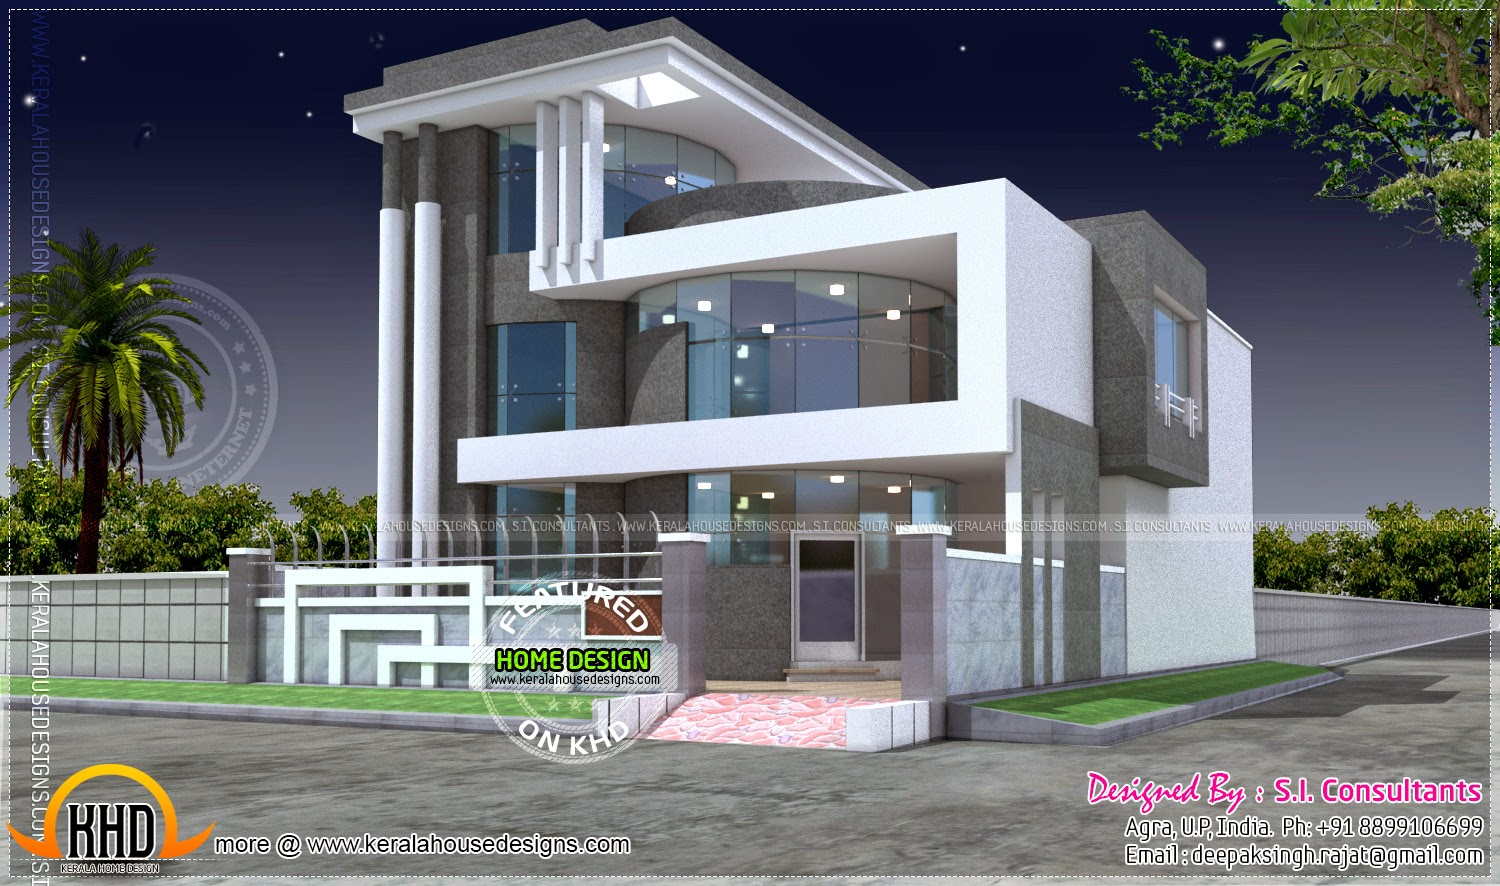 Unique luxury home design kerala home design and floor plans for Luxury home plans